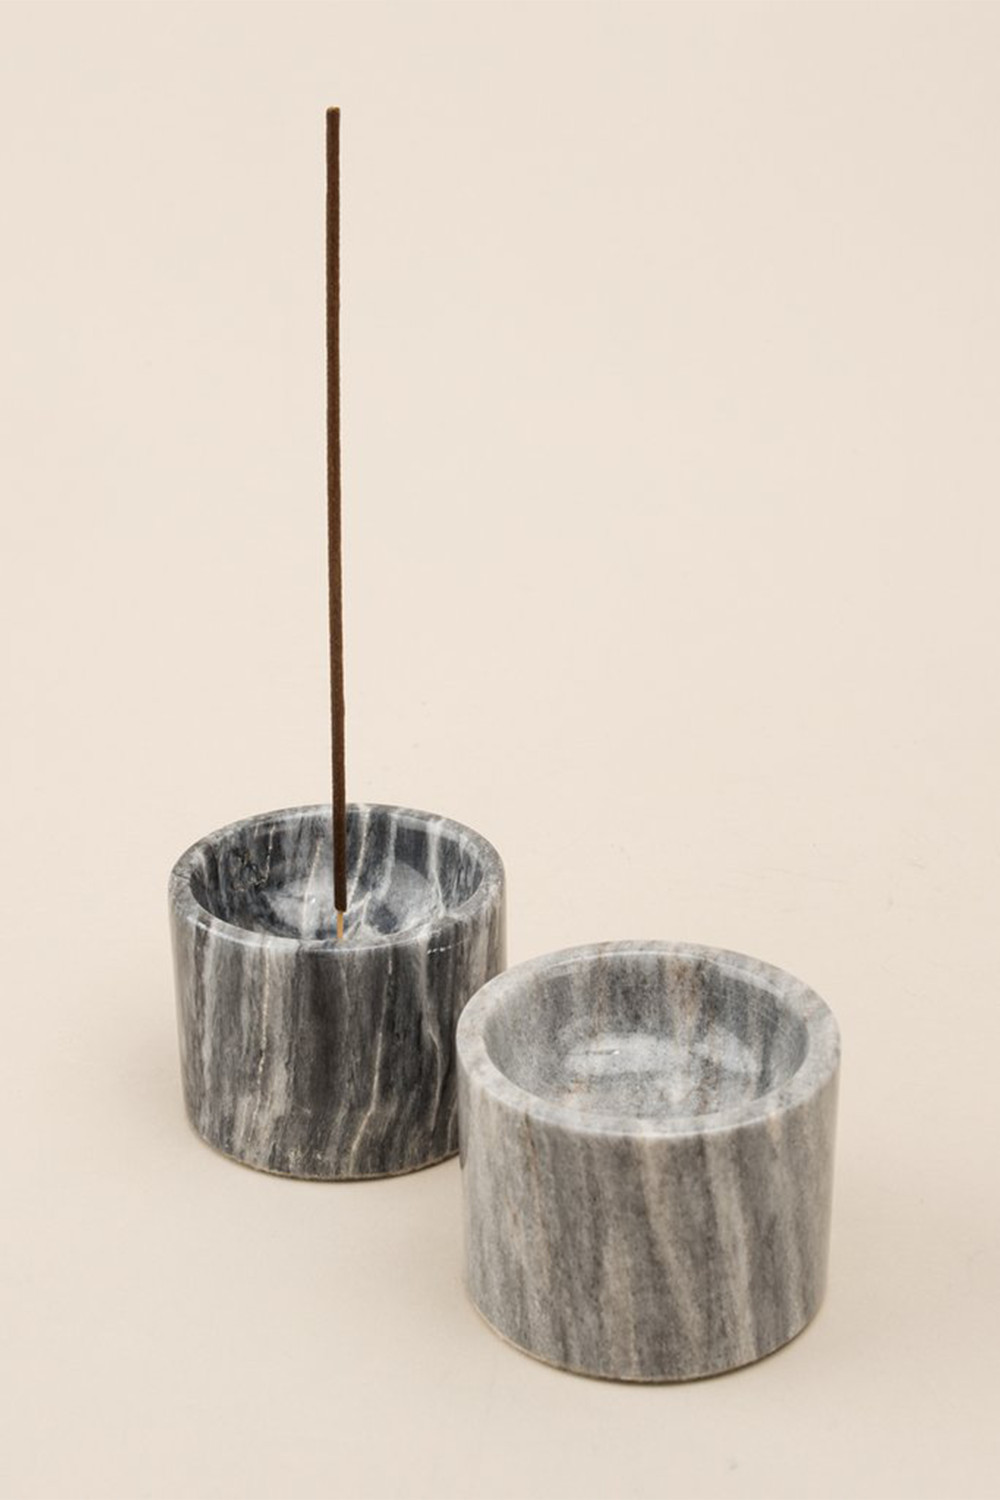 Rooted Incense Holder in black